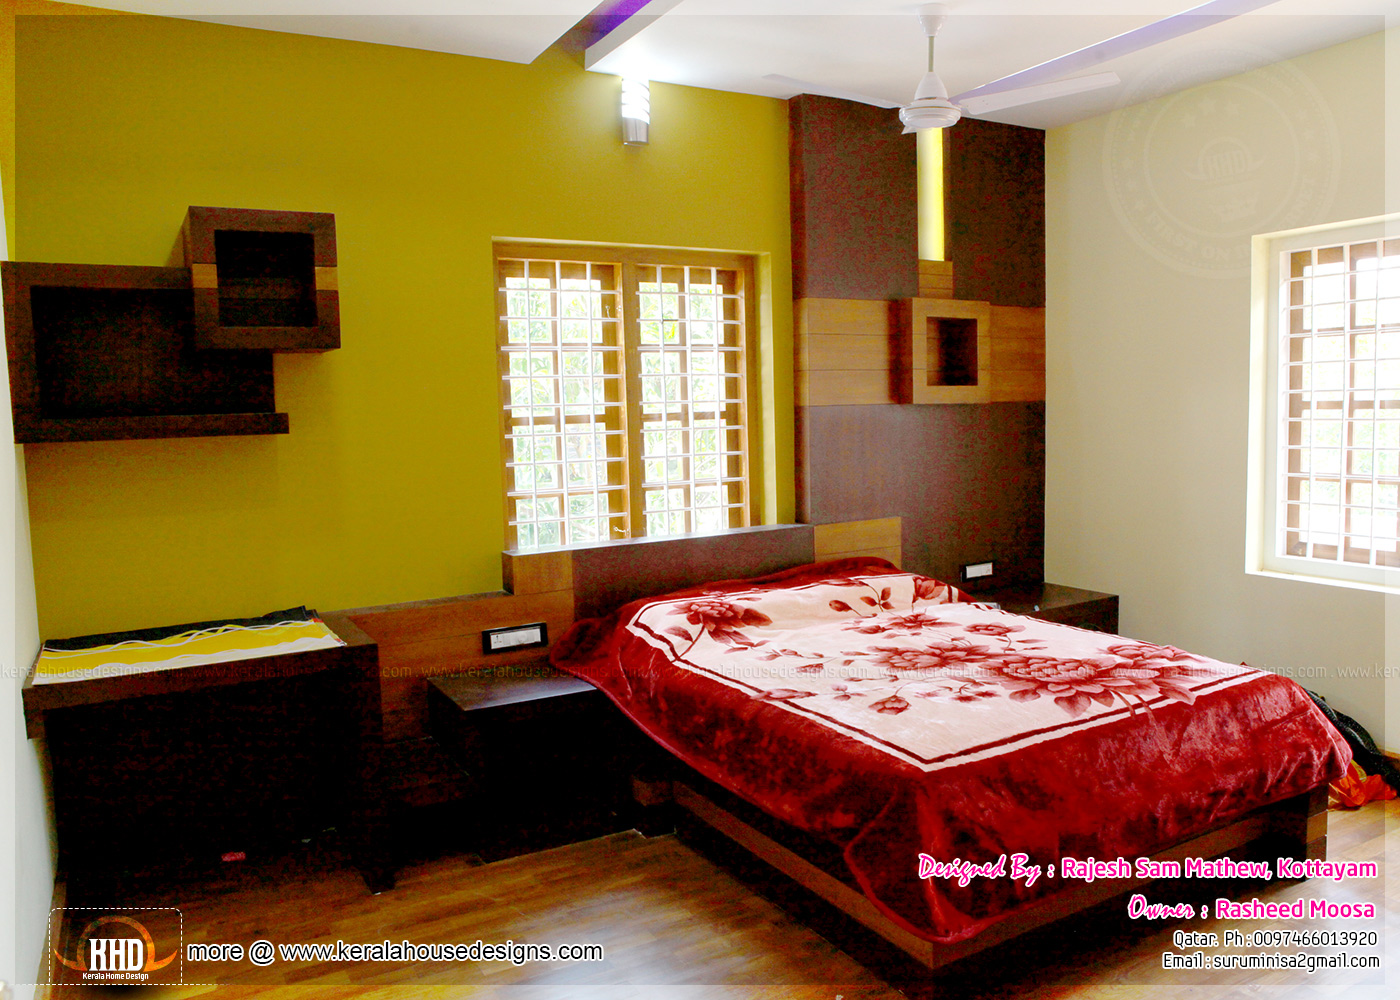 Kerala Interior Design With Photos Home And Floor Master Bedroom